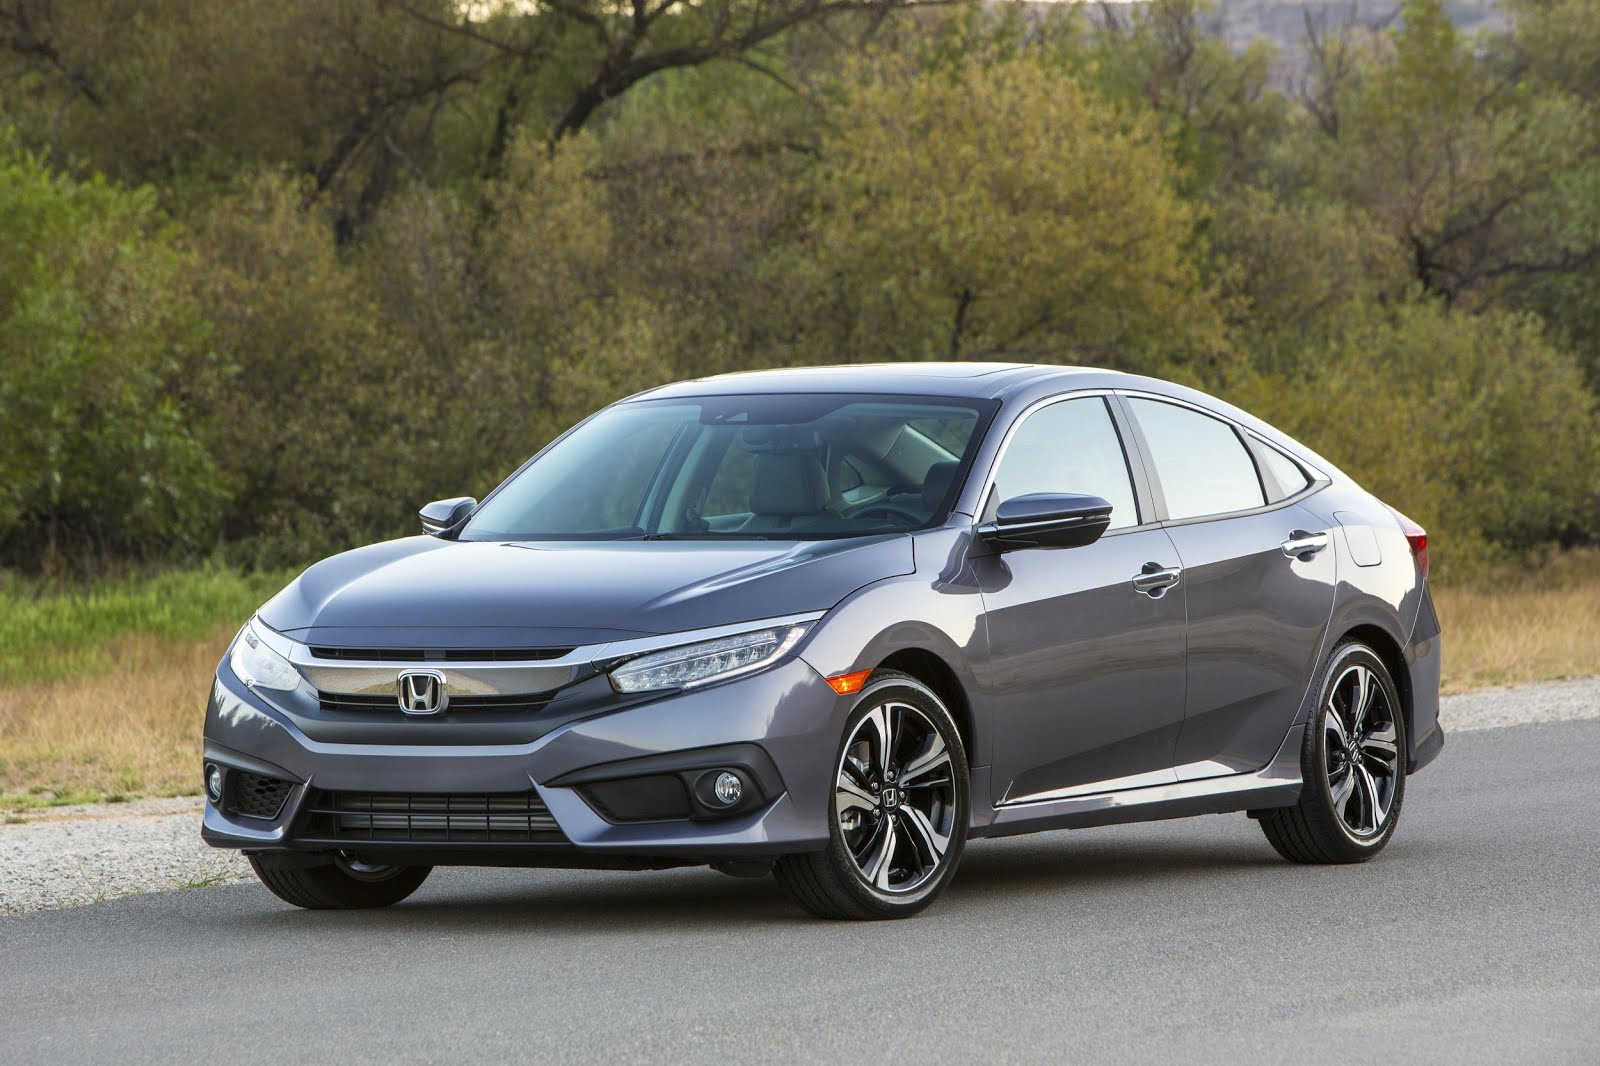 Scheduled To Arrive In The First Quarter Of 2016 Is The All New Honda  Civic. First Unveiled In The United States In September, The Sedan Has  Reportedly ...